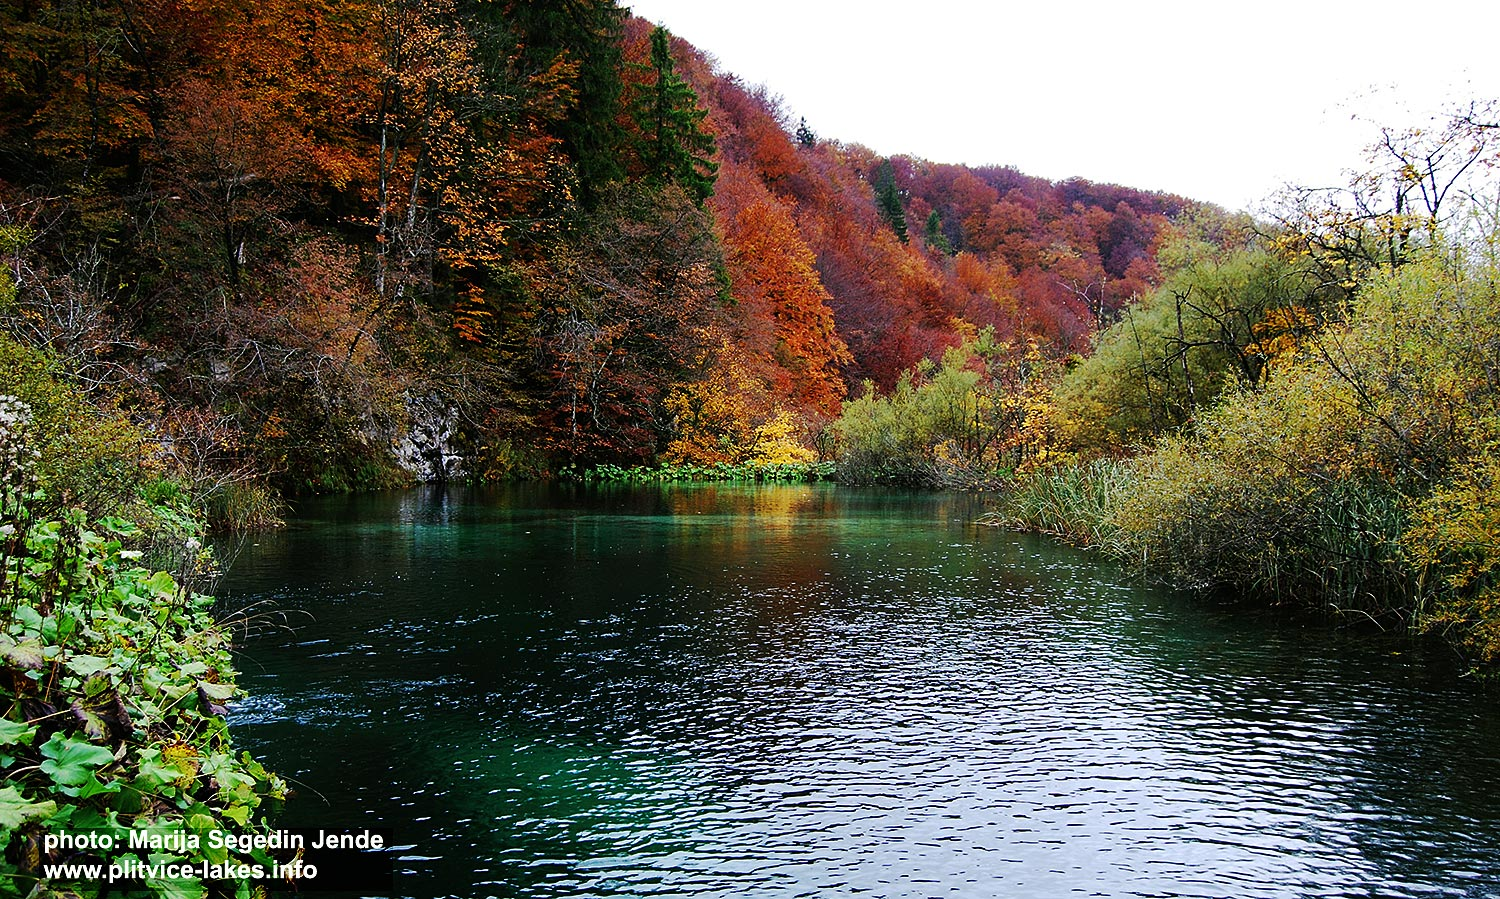 At Plitvice Upper Lakes in the Autumn